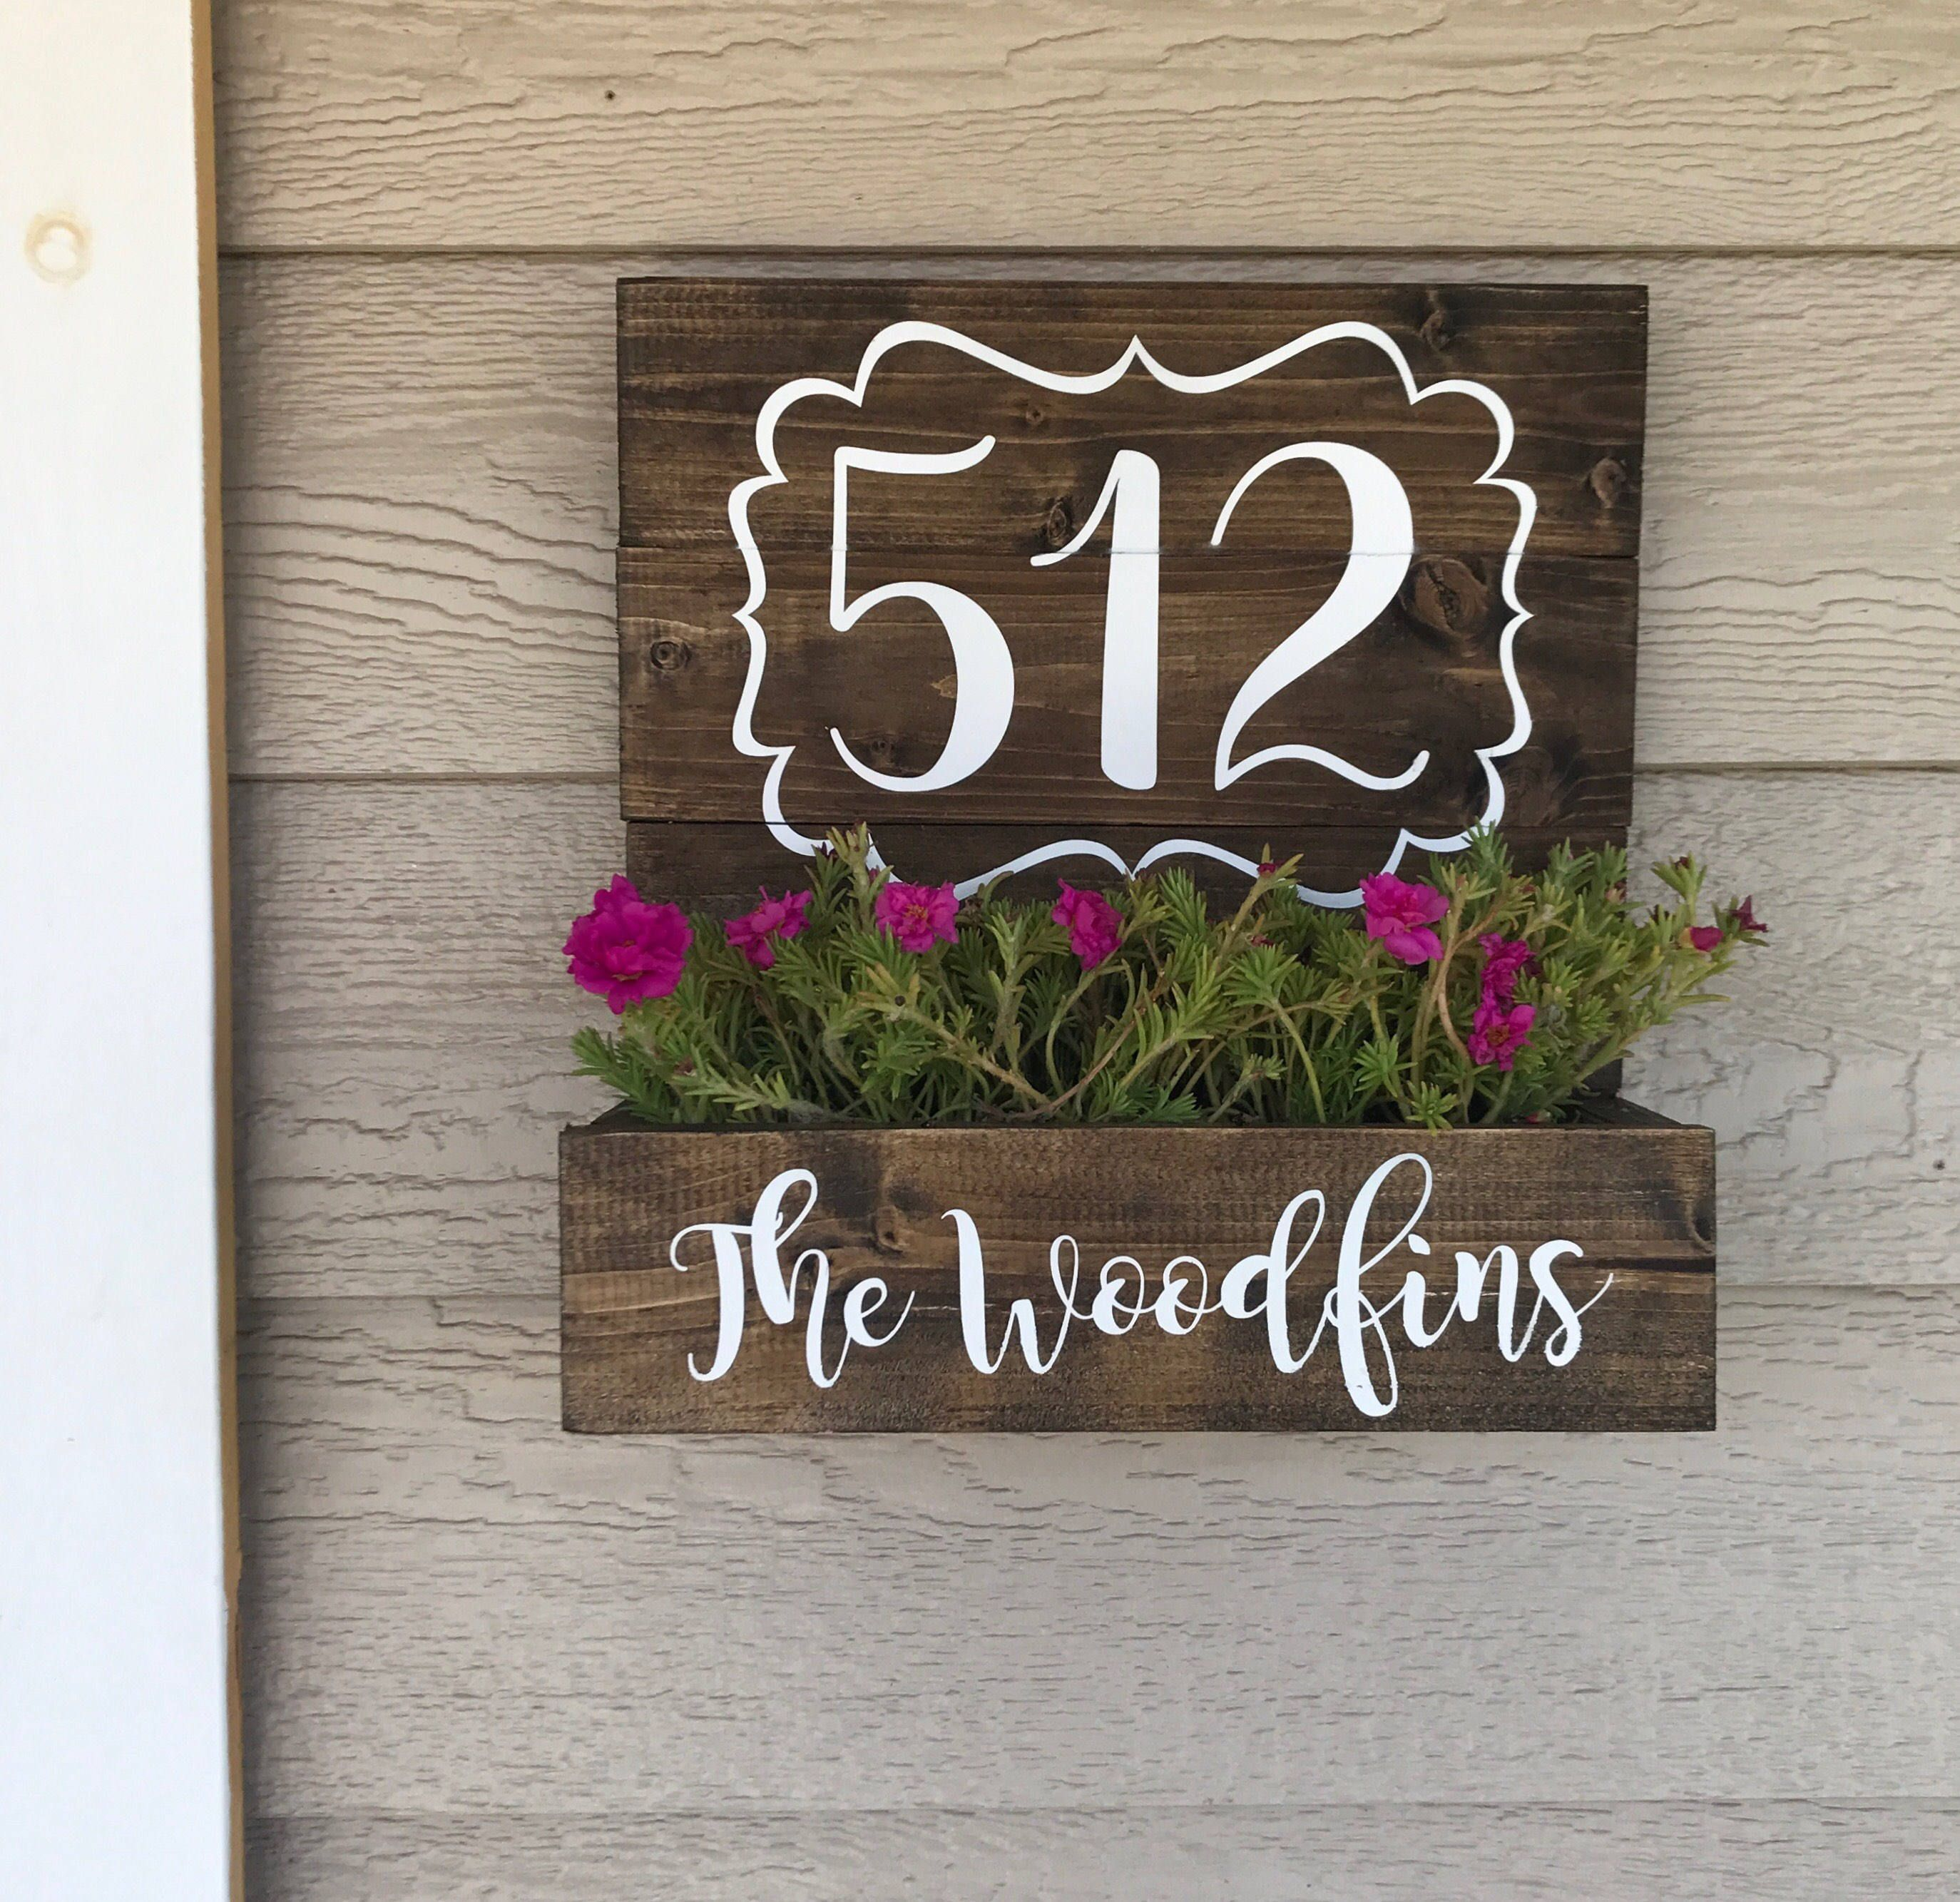 House Number Planter Wooden Address Planter Box Porch Wall Decor